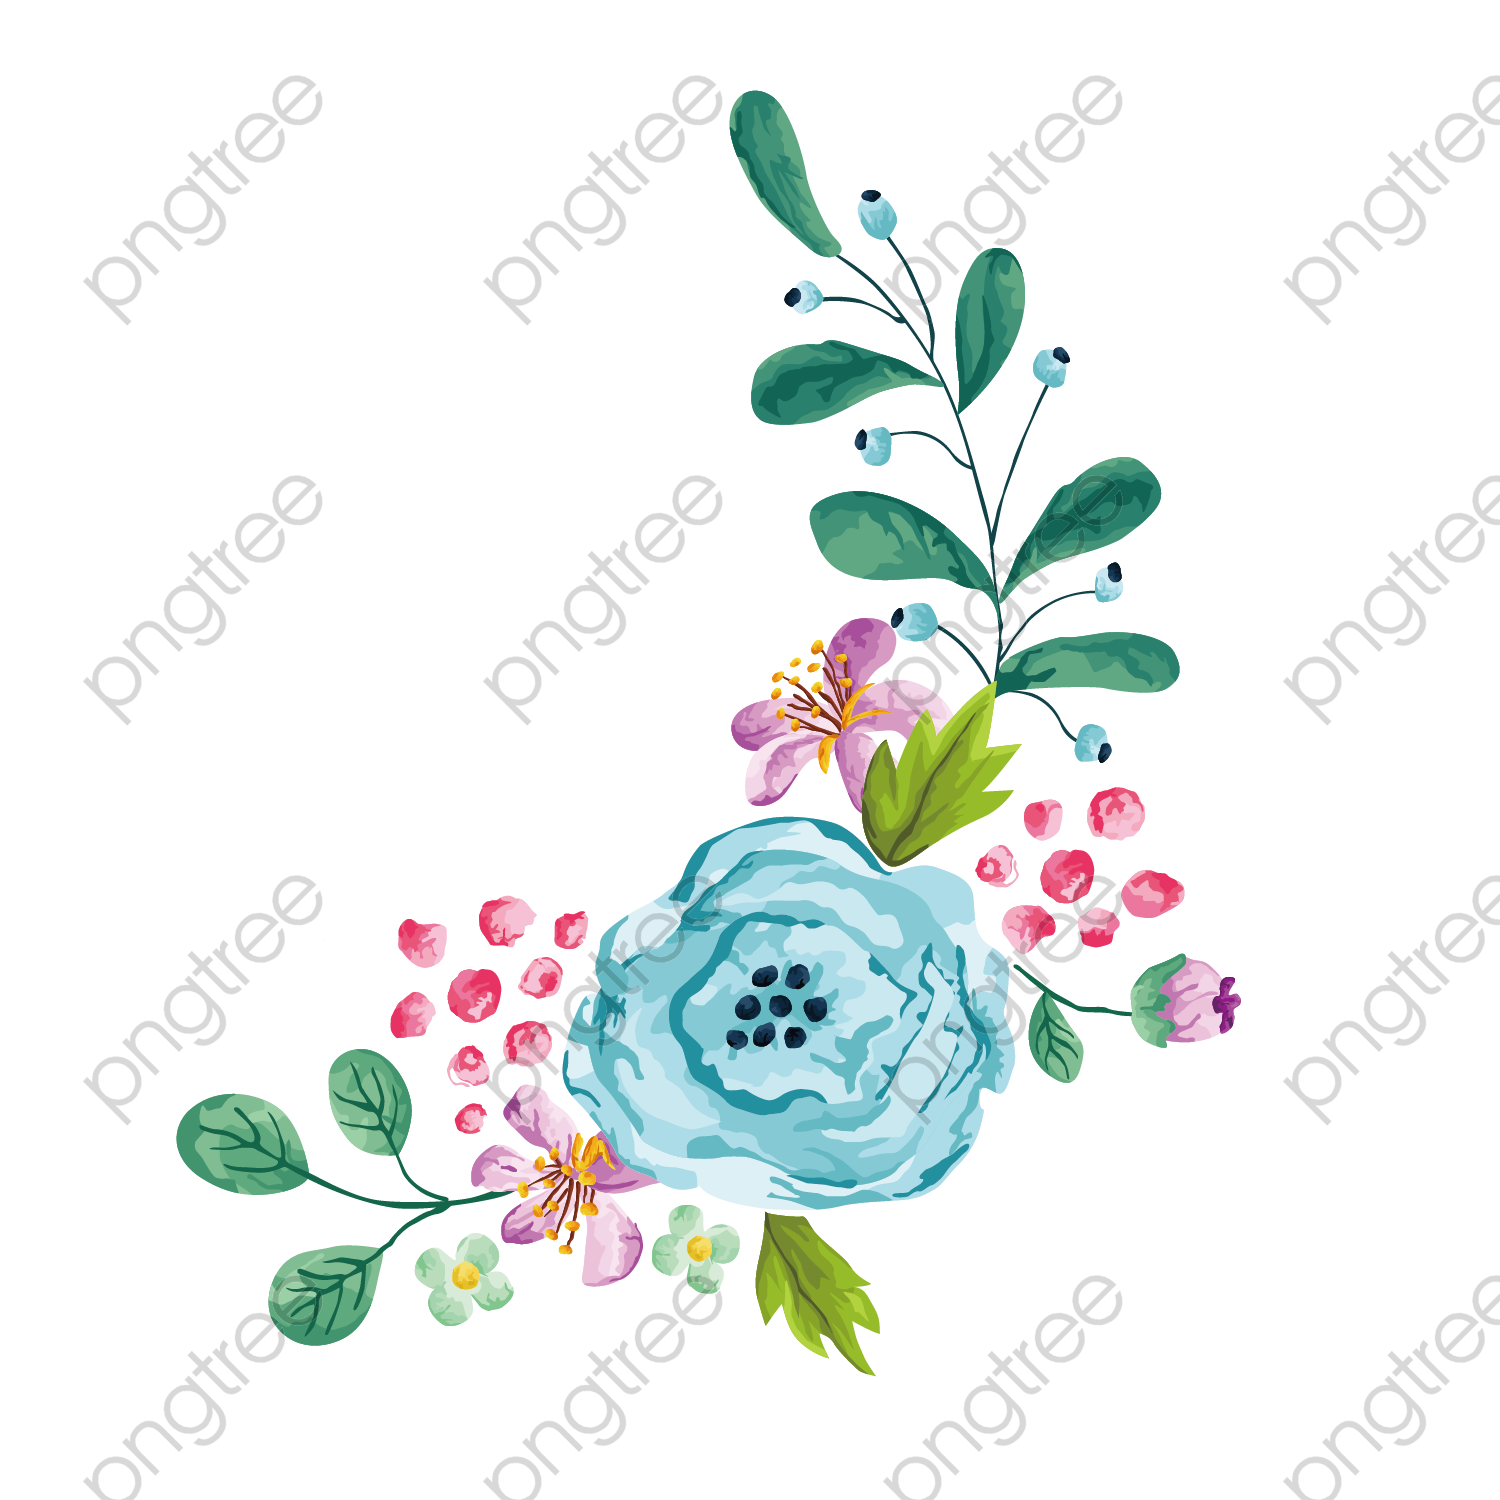 Transparent Vector Cartoon Watercolor Hand Painted Floral